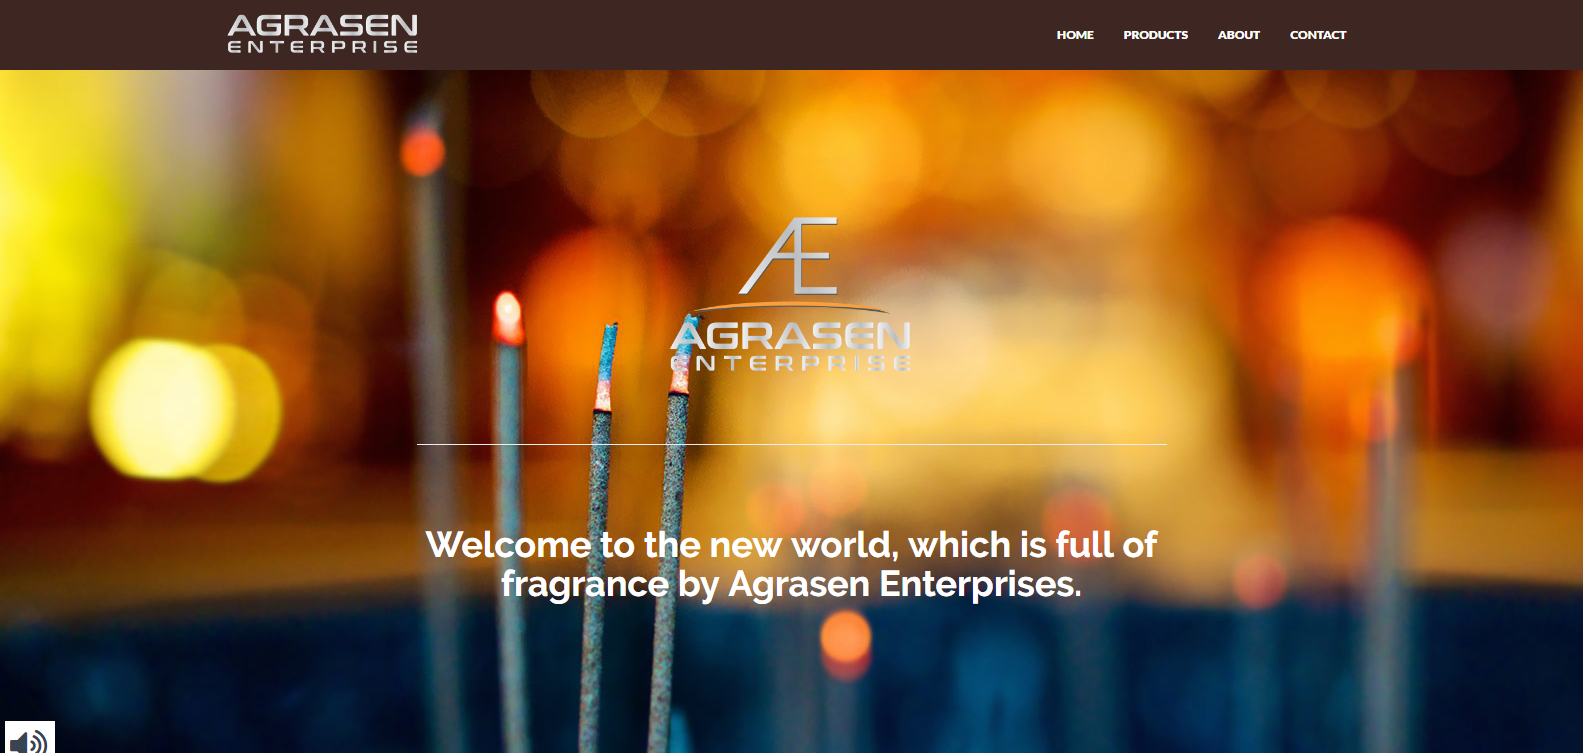 Agrasen Enterprise